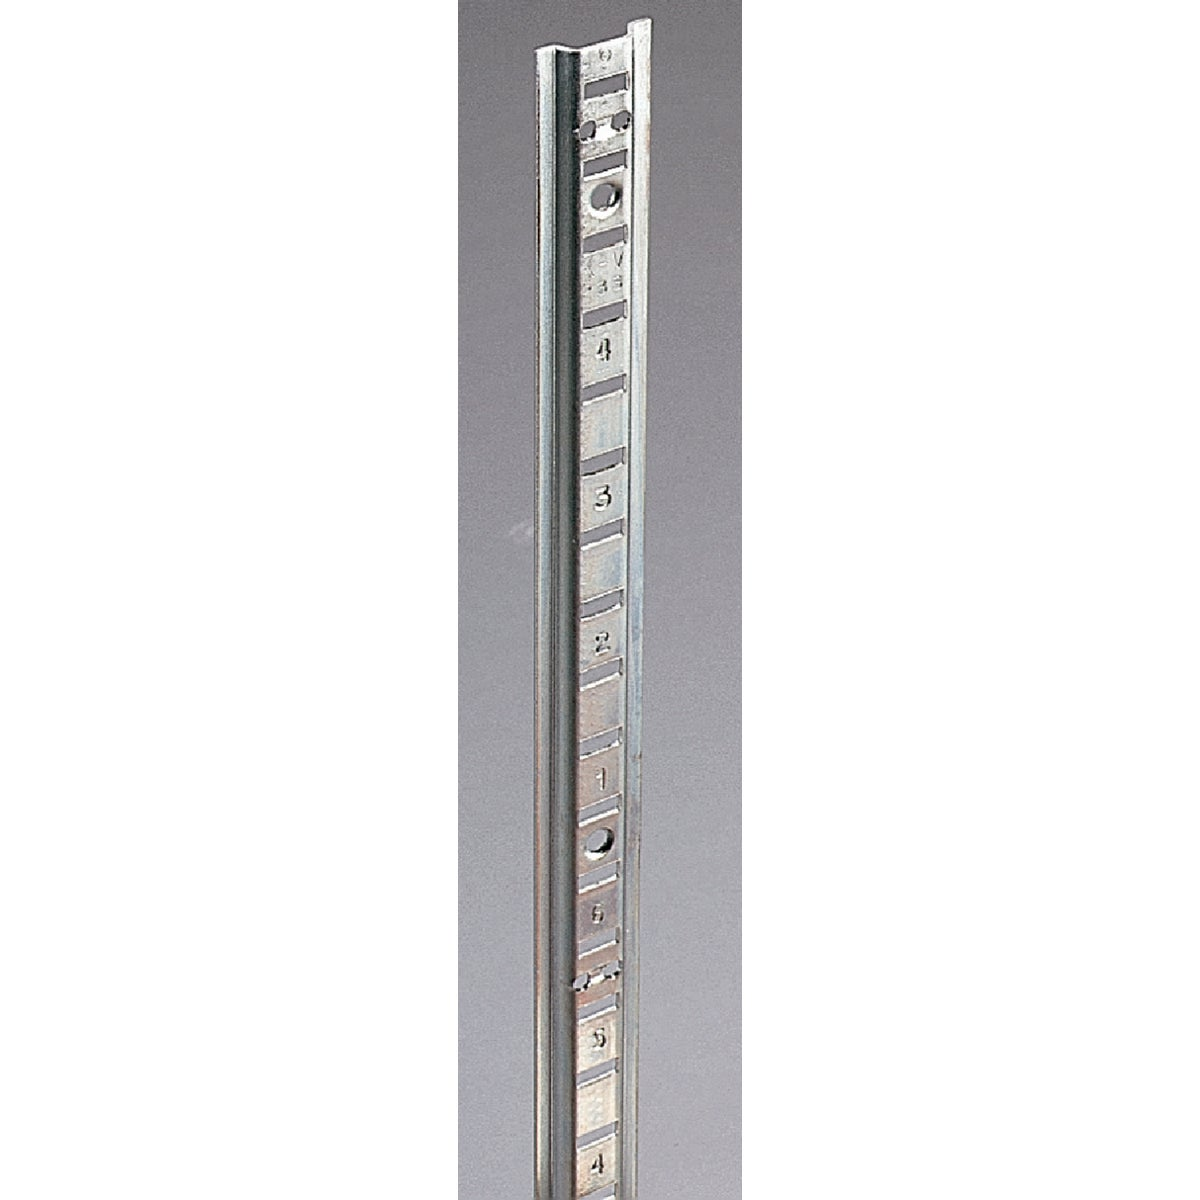 "ZN 48"" PILASTER STANDARD - PK233ZC 48 by Knape & Vogt Mfg Co"